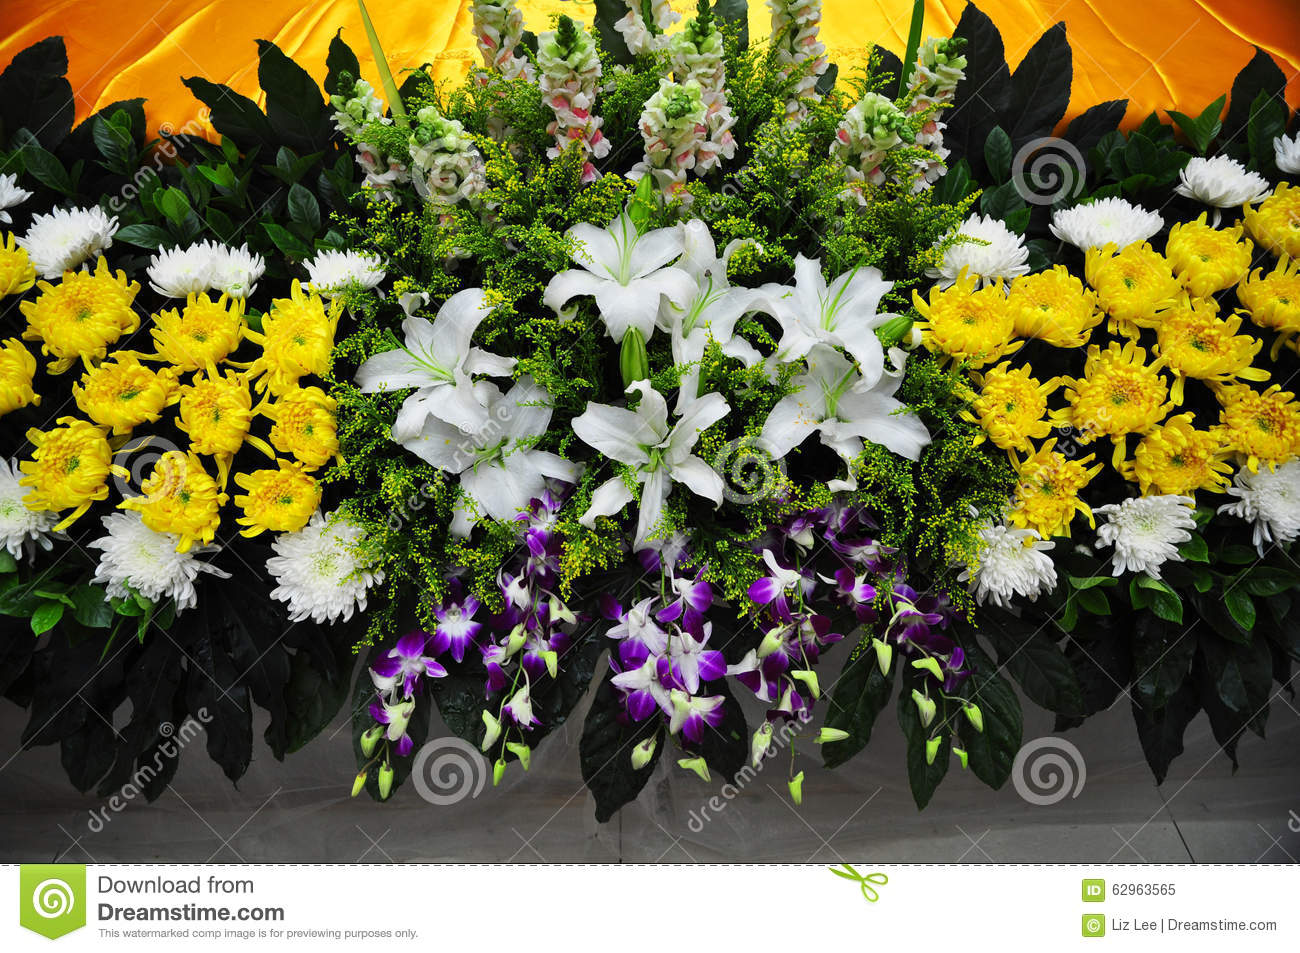 Funeral flowers for condolences stock image image of daisy bulbs chinese funeral flowers for condolenceswhite and yellow chrysanthemumwhite lily izmirmasajfo